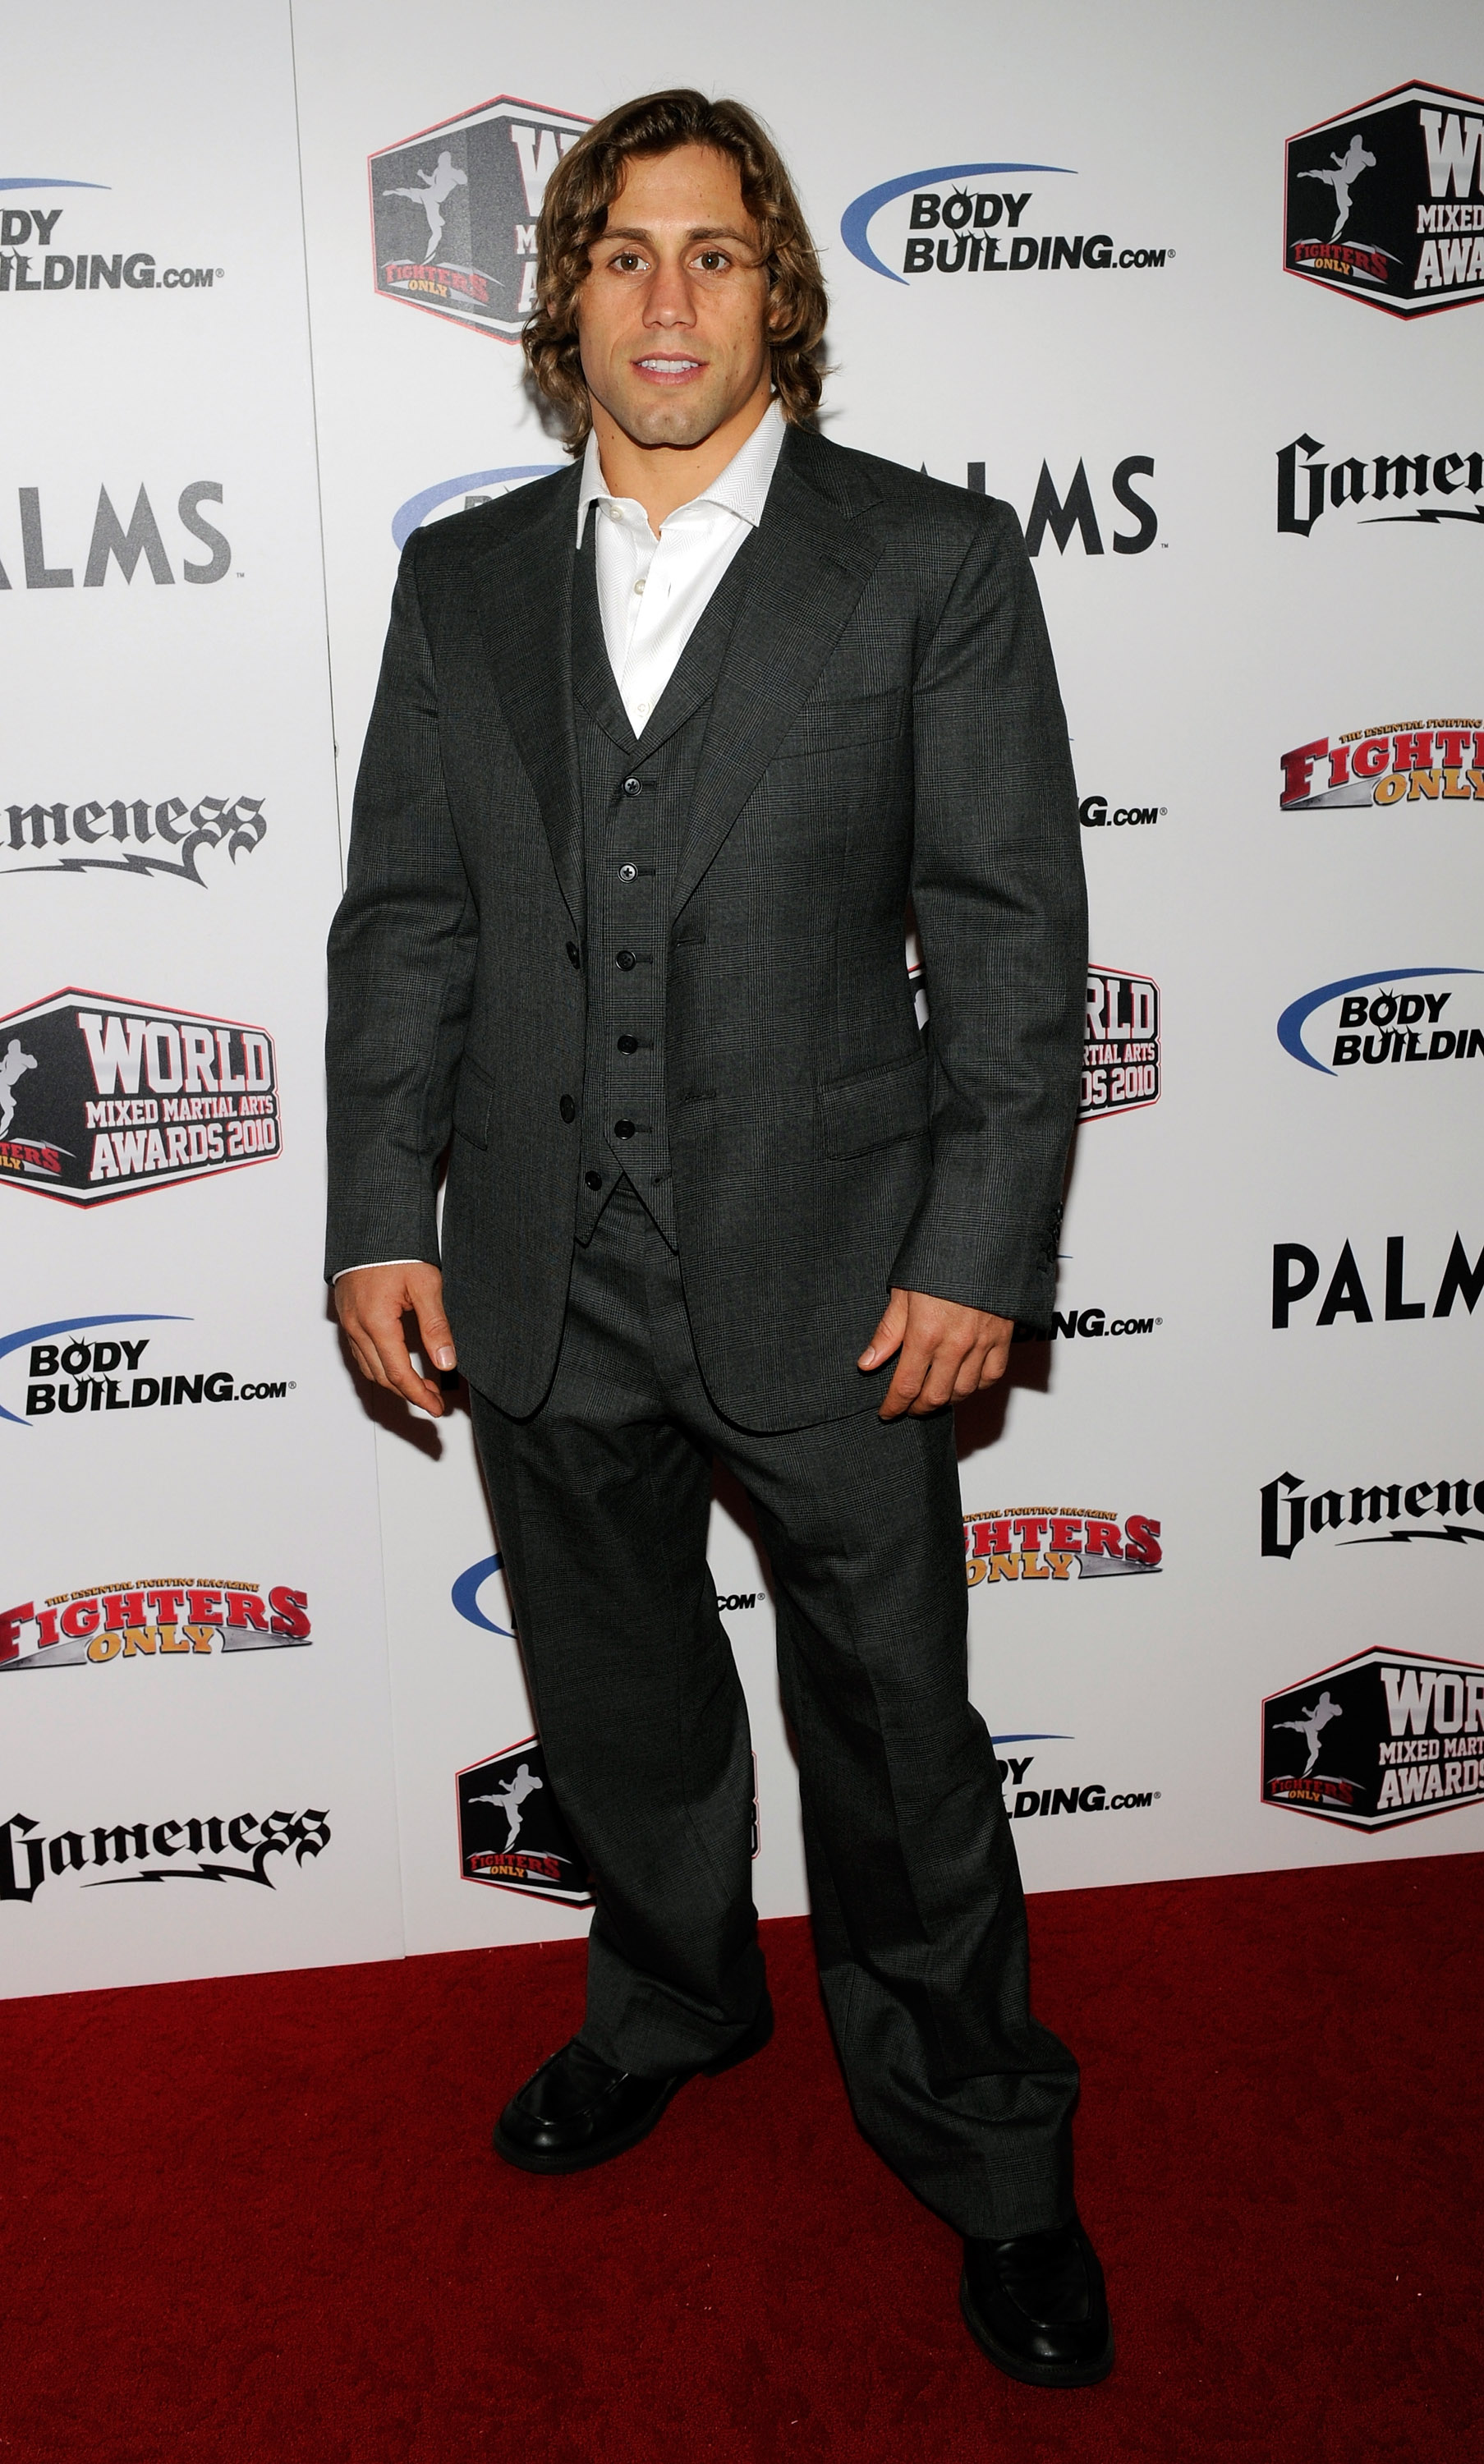 LAS VEGAS, NV - DECEMBER 01:  Mixed martial artist Urijah Faber arrives at the third annual Fighters Only World Mixed Martial Arts Awards 2010 at the Palms Casino Resort December 1, 2010 in Las Vegas, Nevada.  (Photo by Ethan Miller/Getty Images)